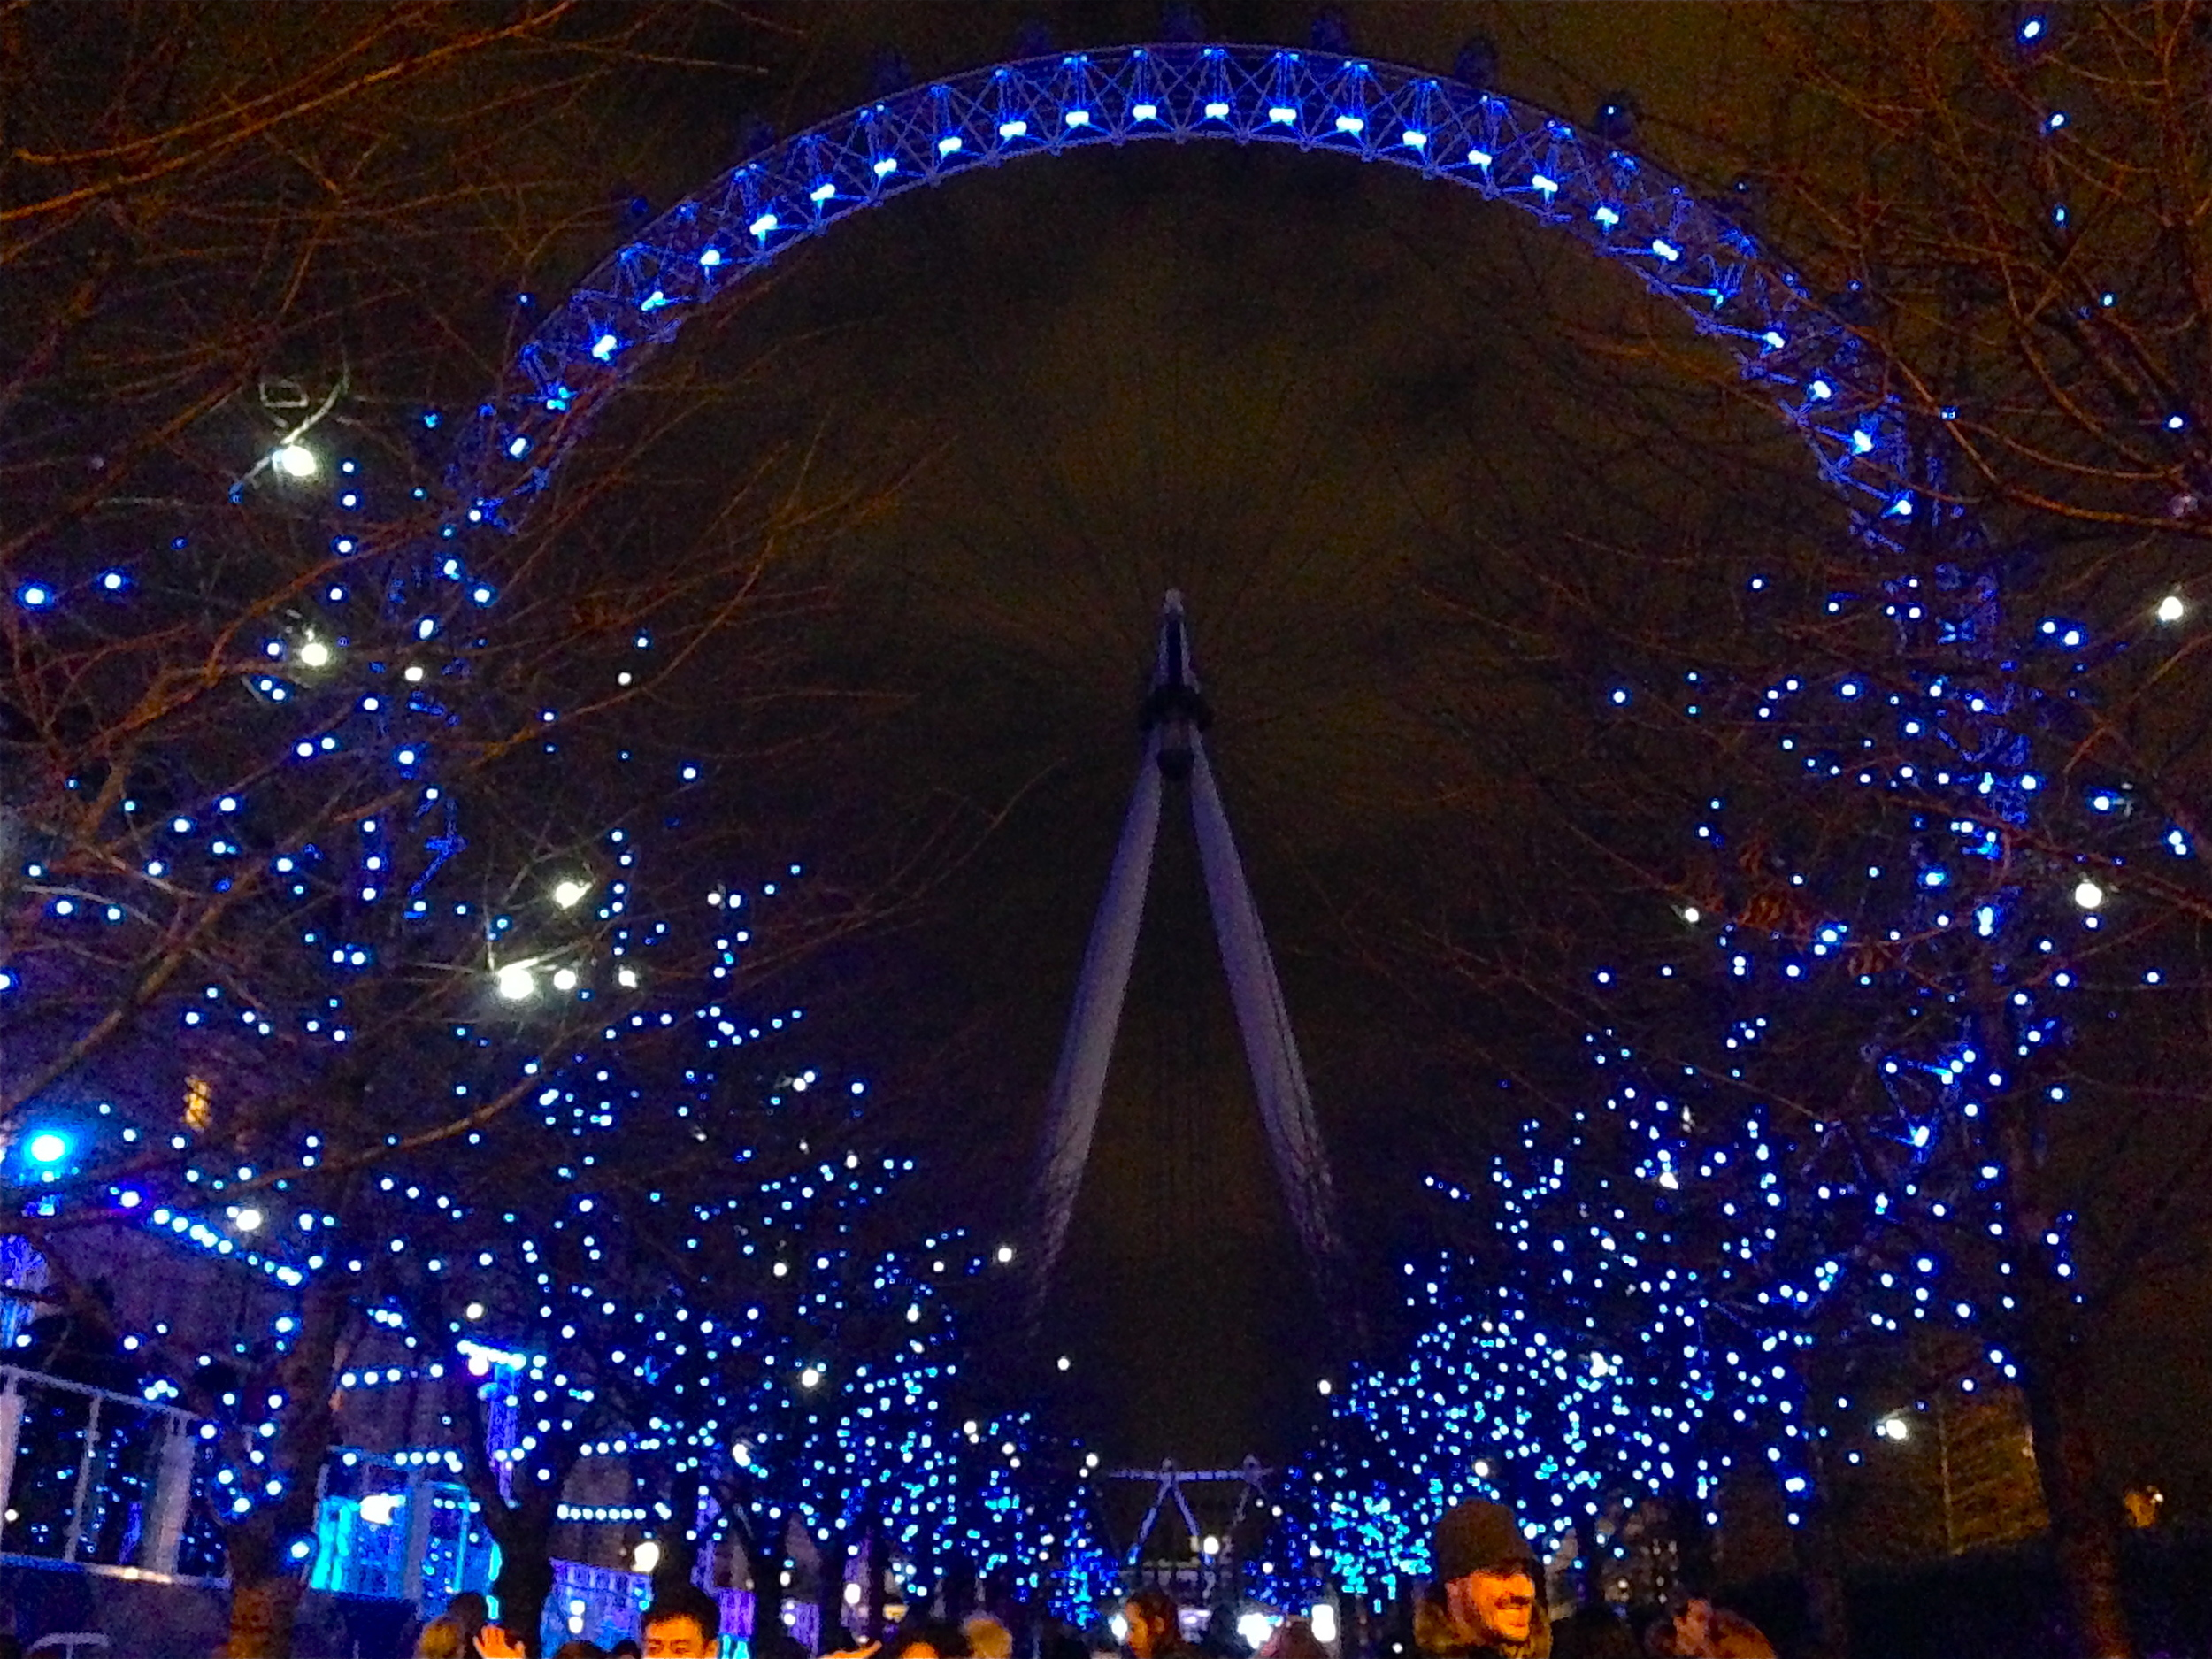 Kaci Nicole - London Eye at Christmastime